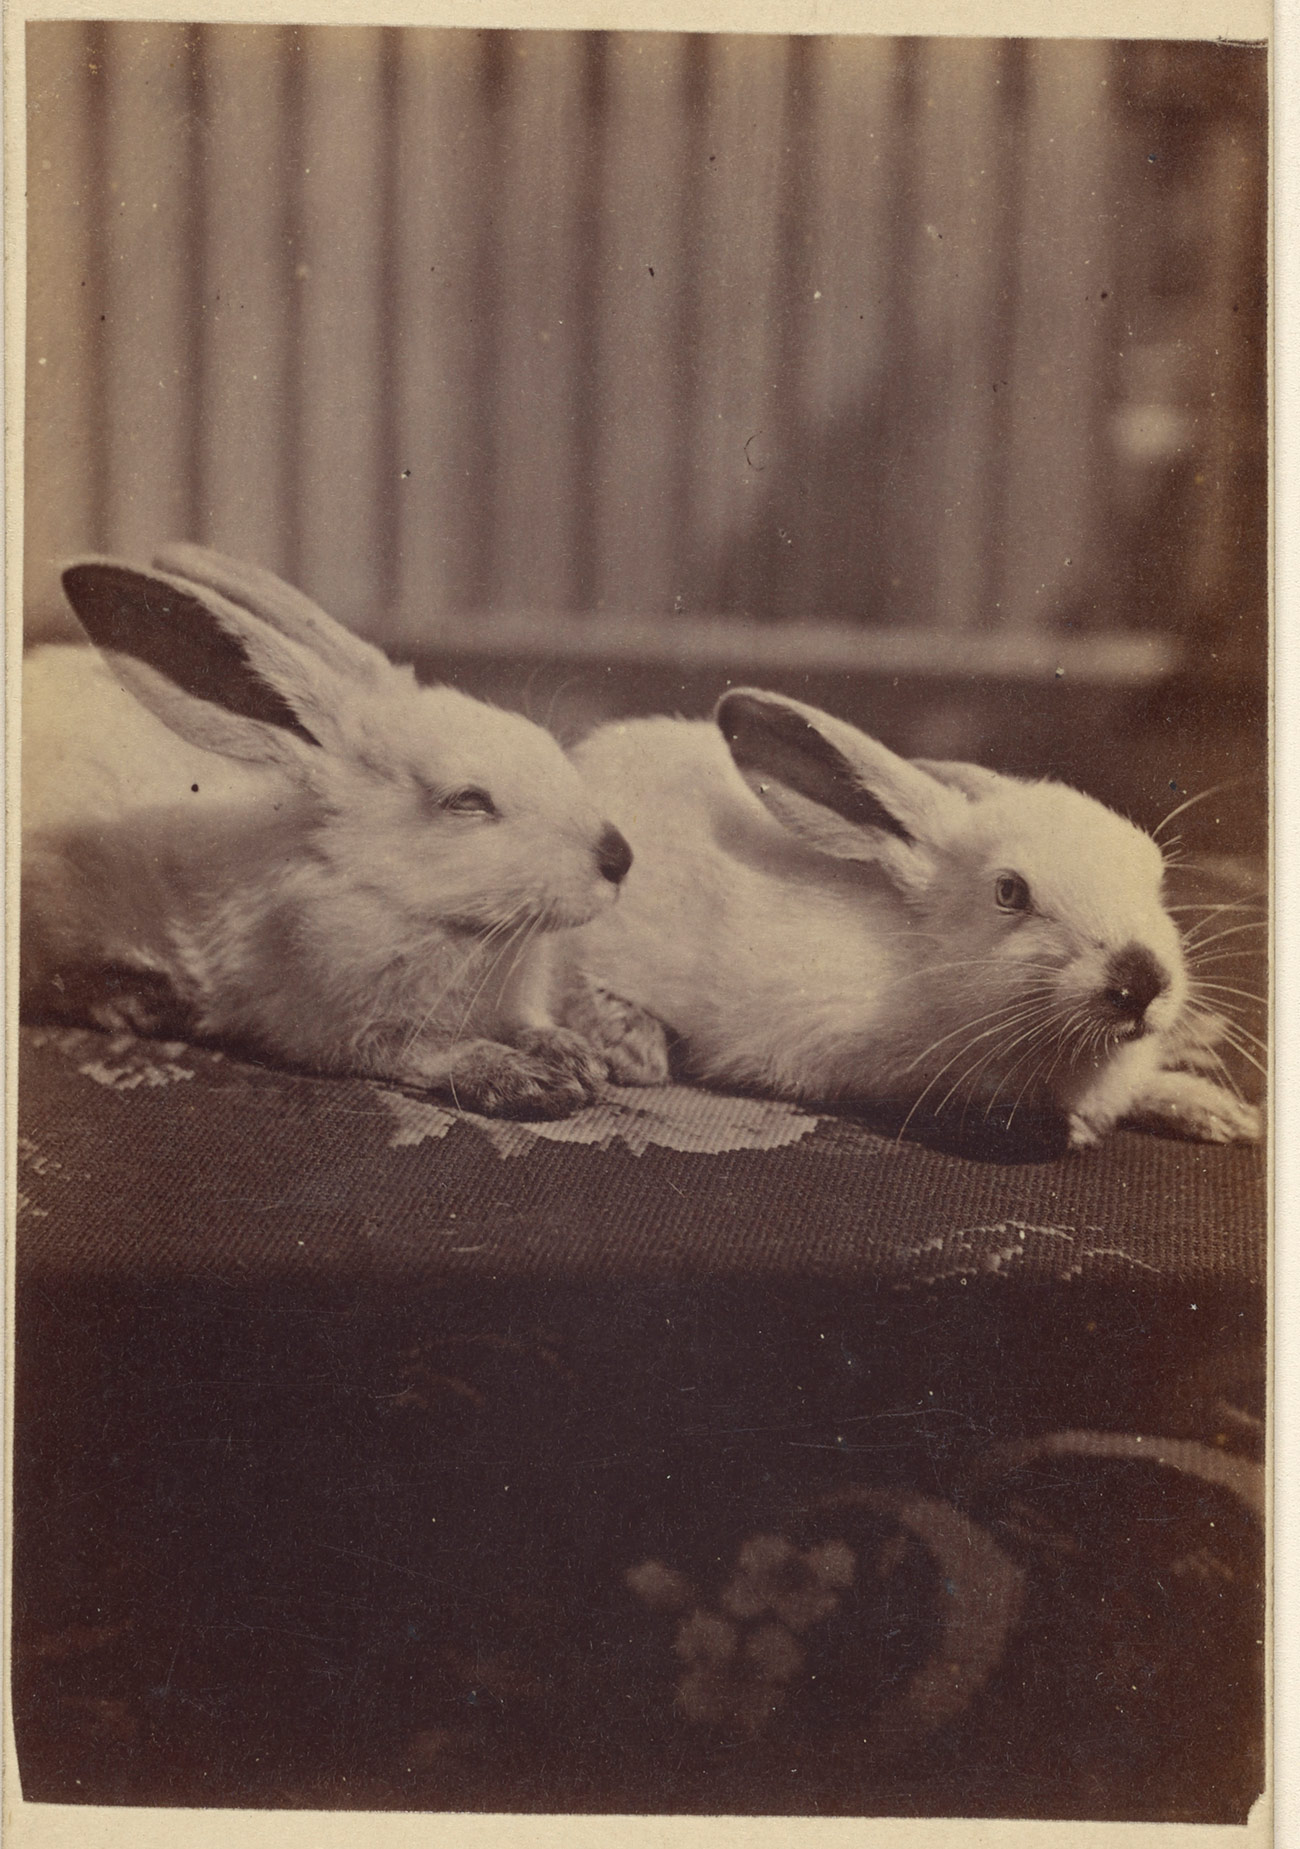 Two white rabbits laying on a cushion.